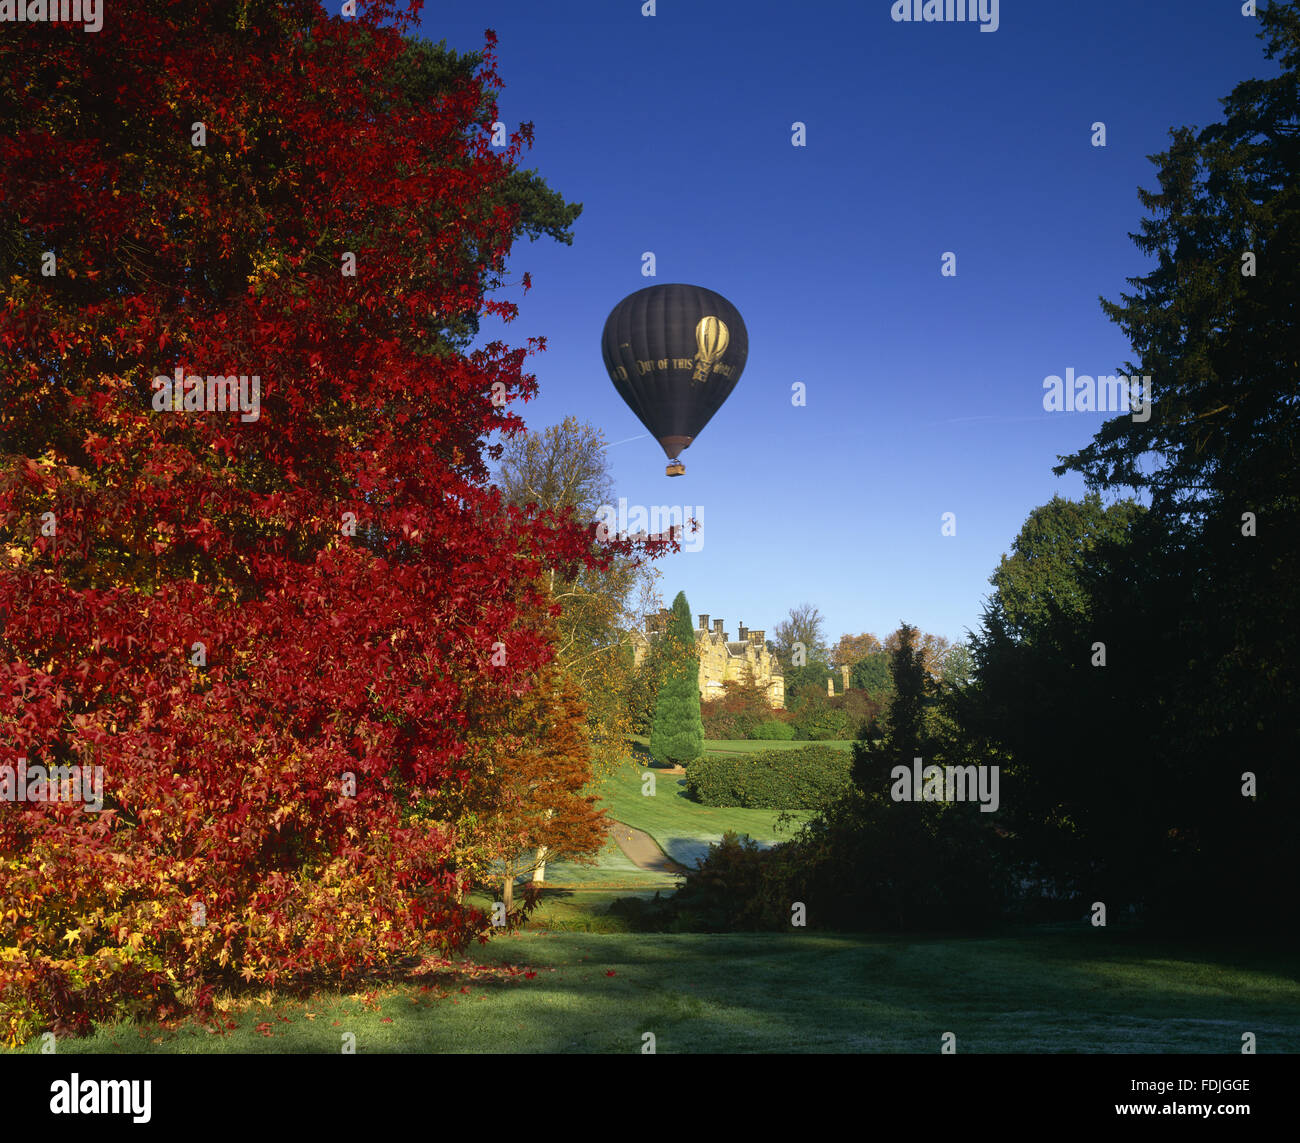 A hot air balloon glides over the Victorian house at Scotney Castle, Lamberhurst, Kent. - Stock Image